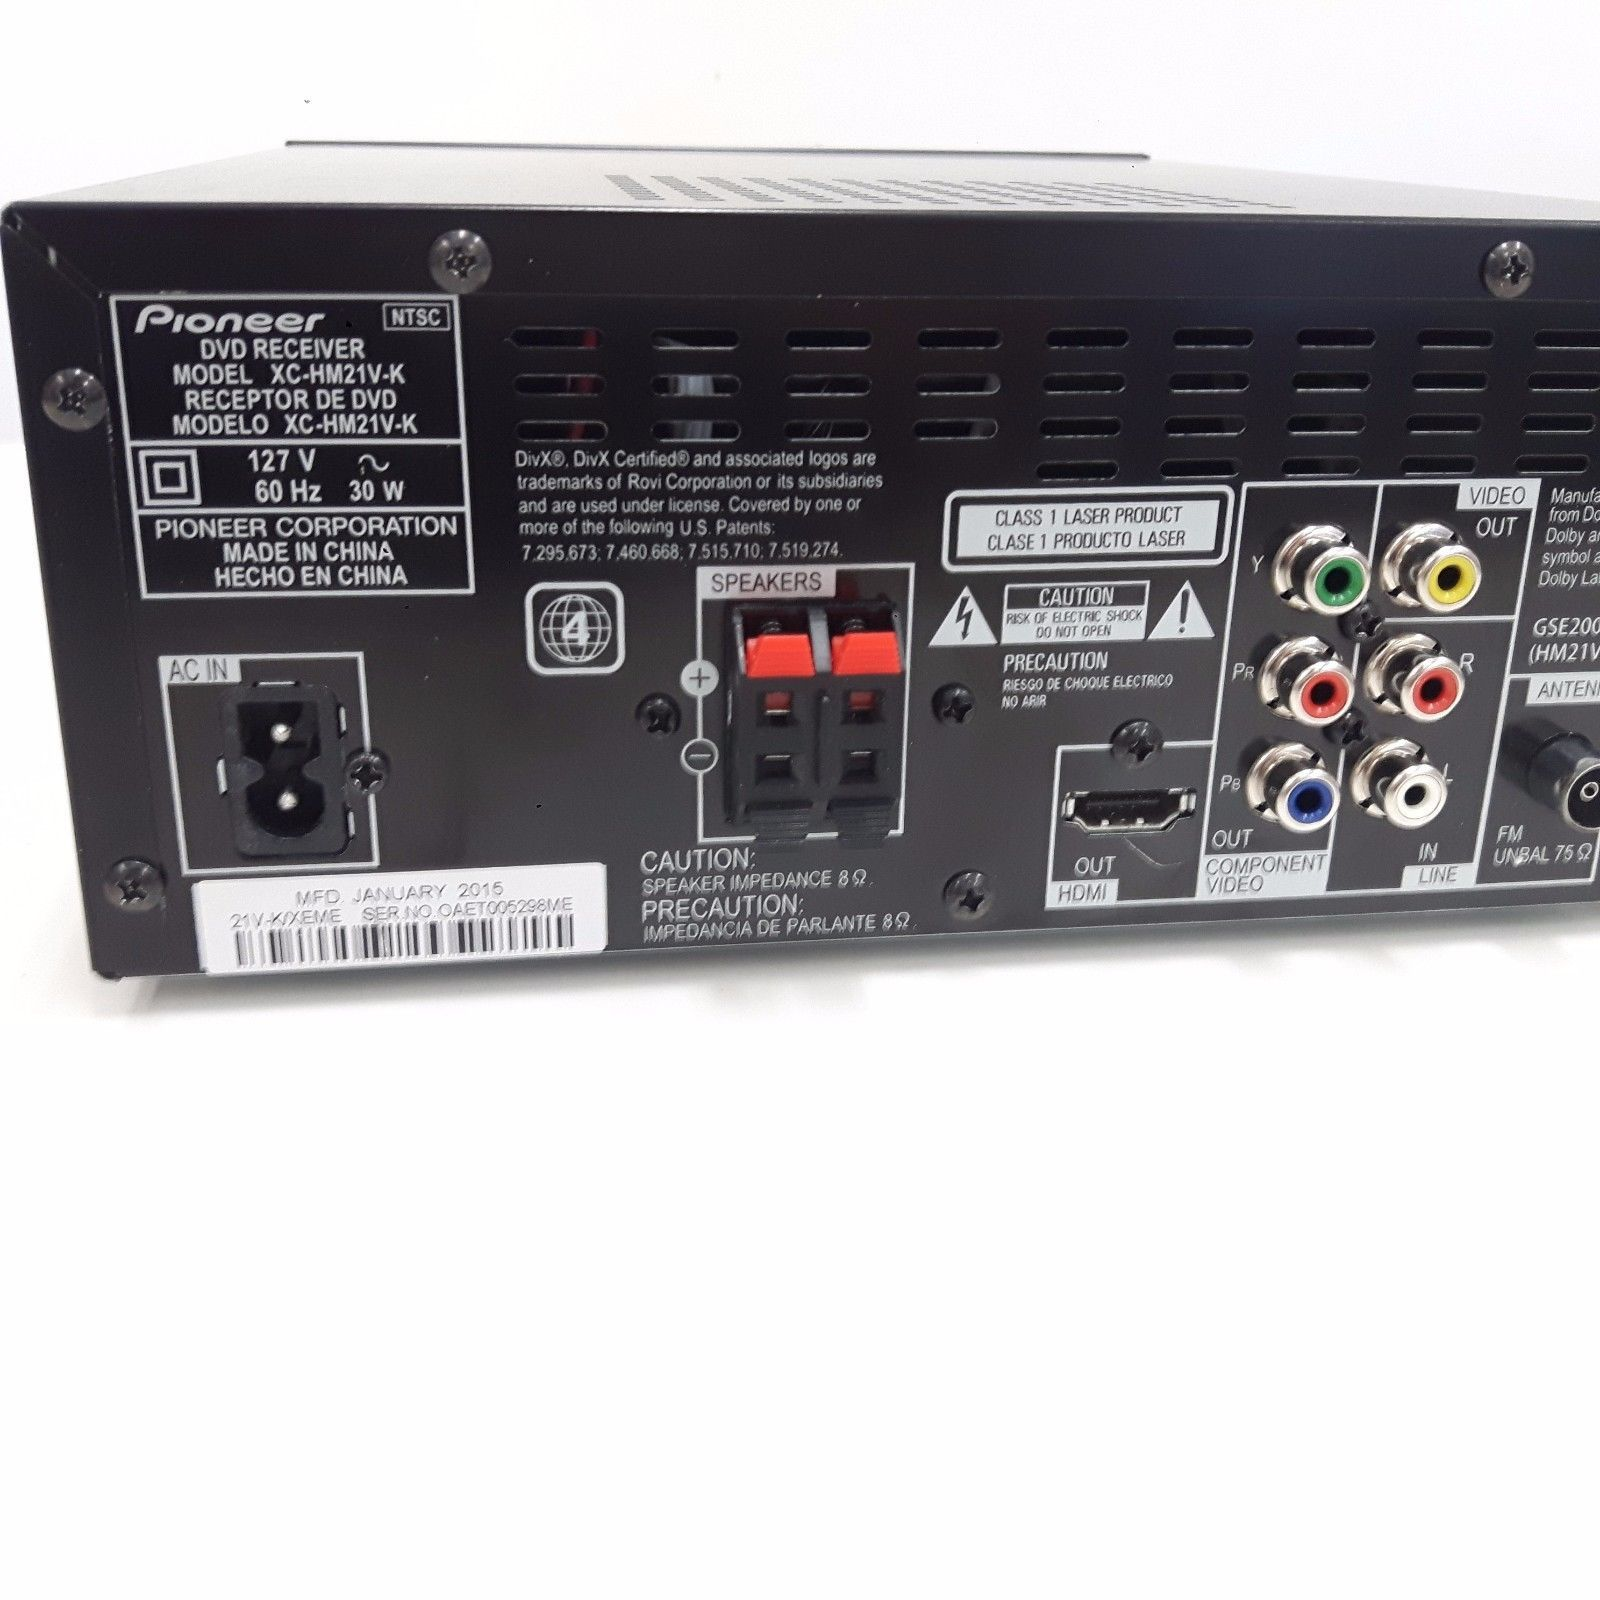 Pioneer Dehp3700mp Replacement Receiver Only No Faceplate Deh P790bt Premier Wiring Diagram Get Free Image About Defective X Hm21v K Dvd Sold As Is